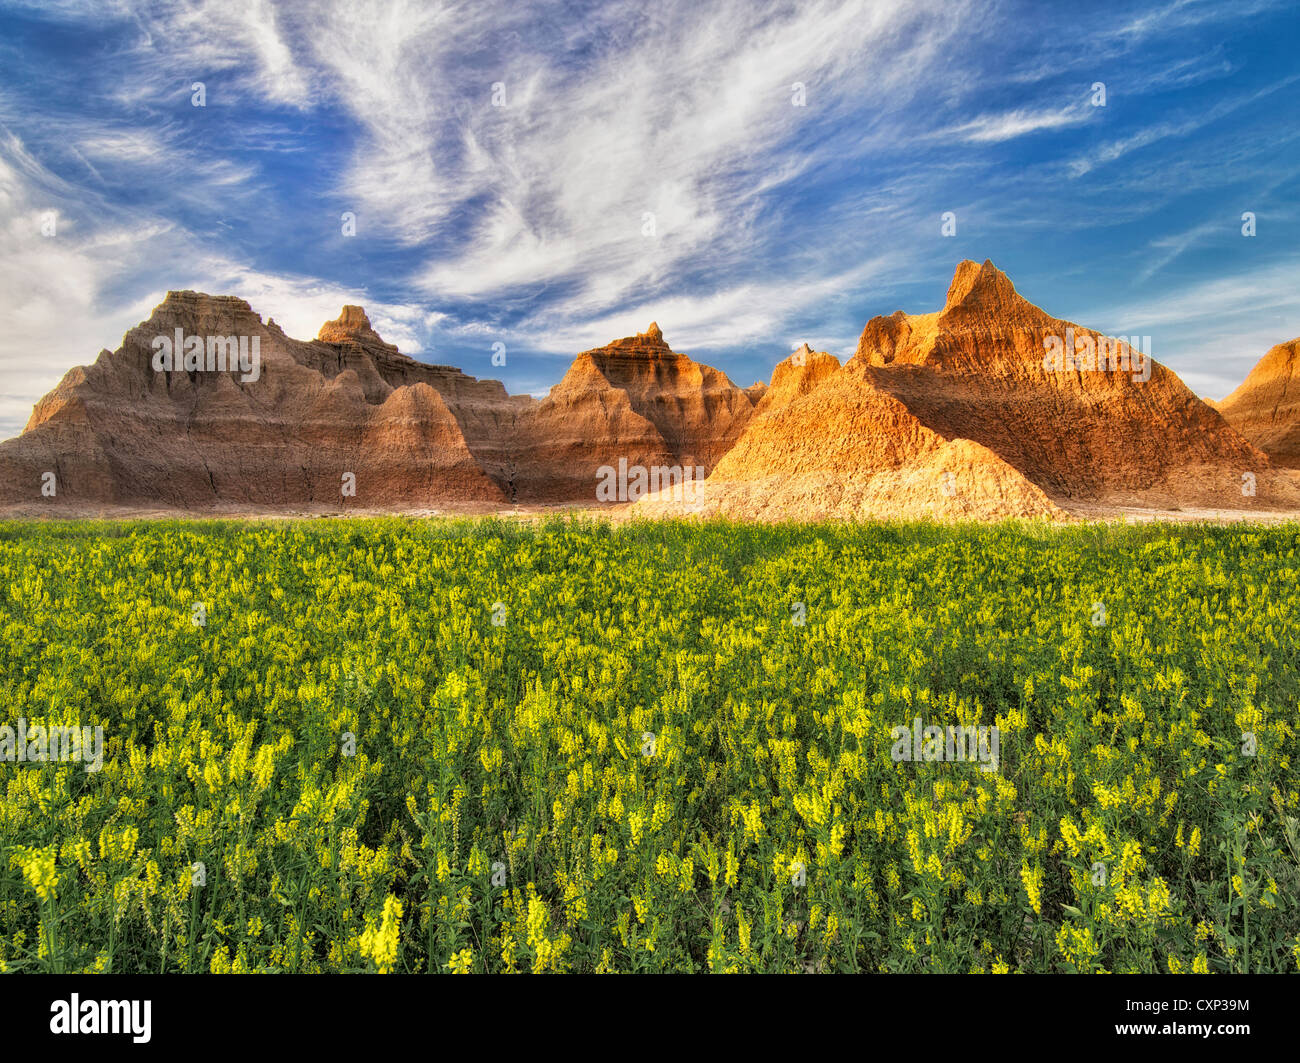 Yellow Sweet Clover and rock formations. Badlands National Park, South Dakota. - Stock Image